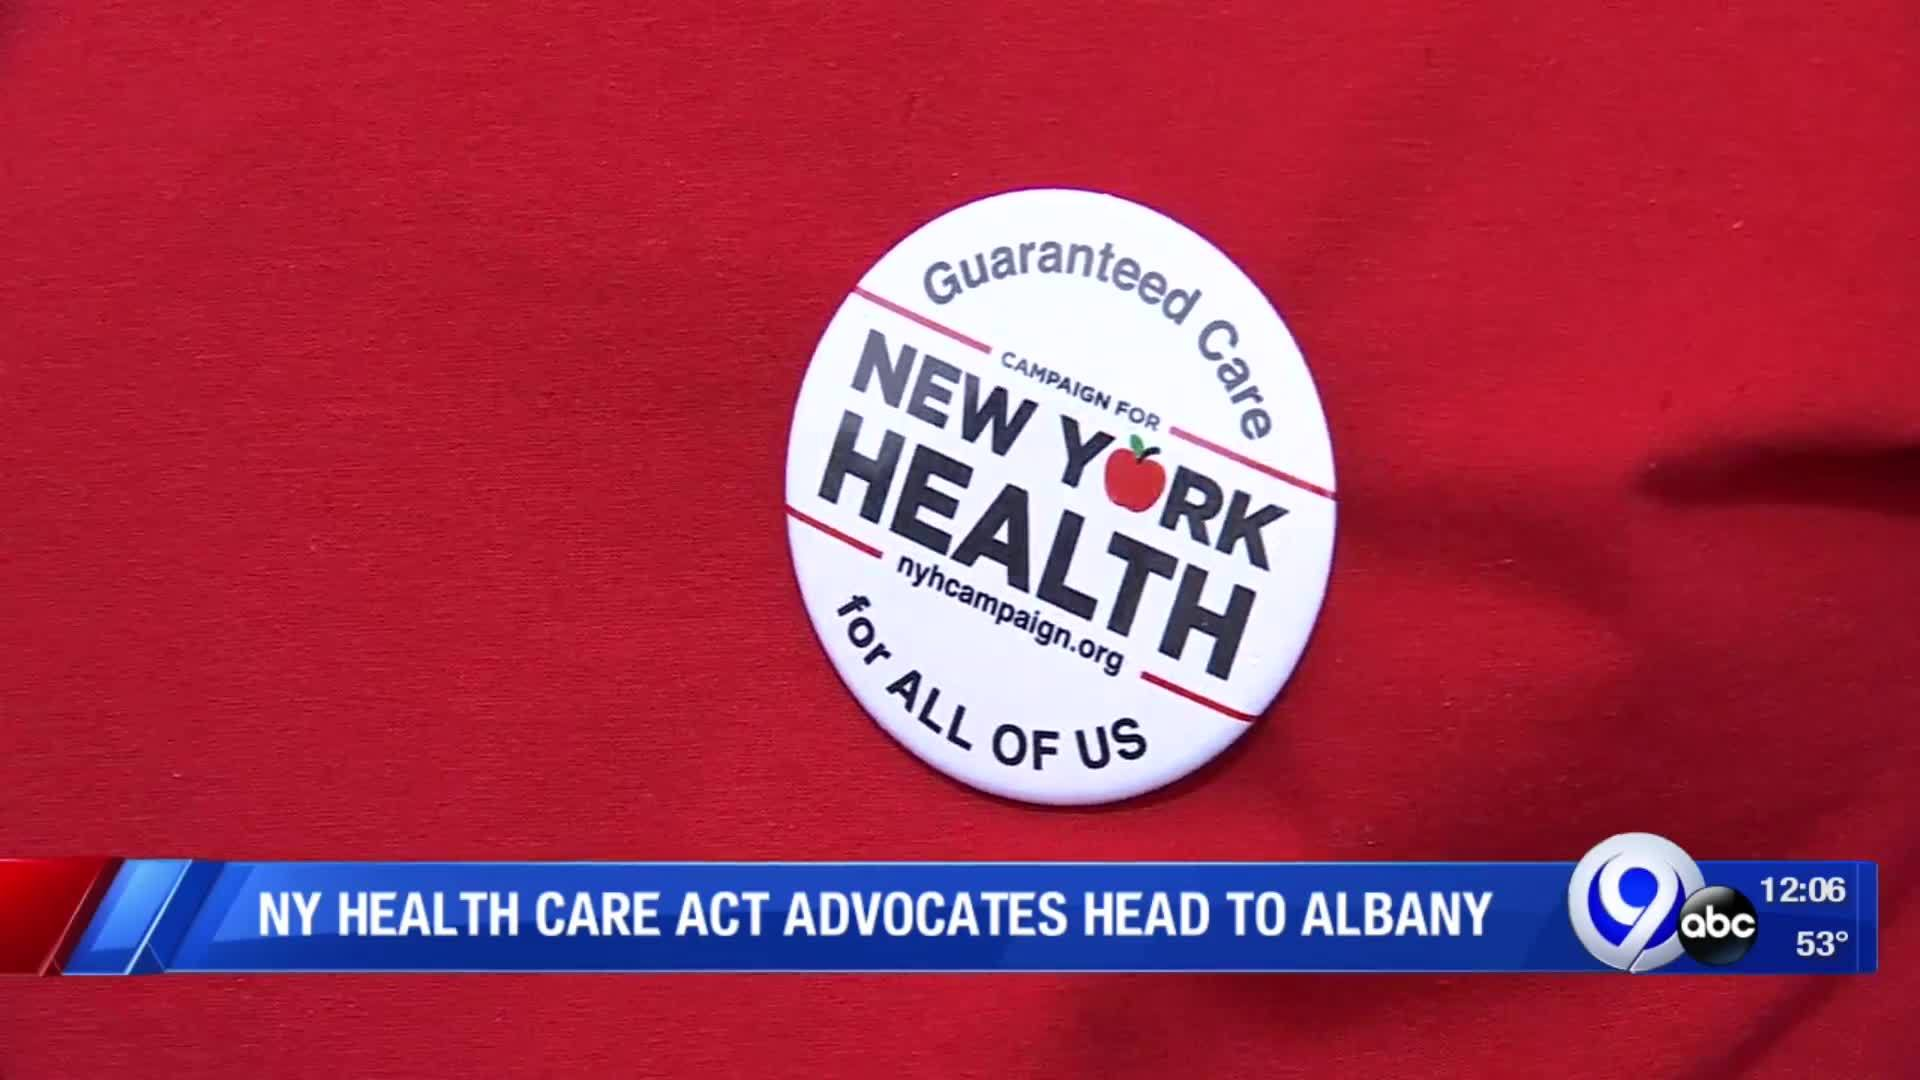 New_York_Health_Care_Act_advocates_head__6_20190528161432